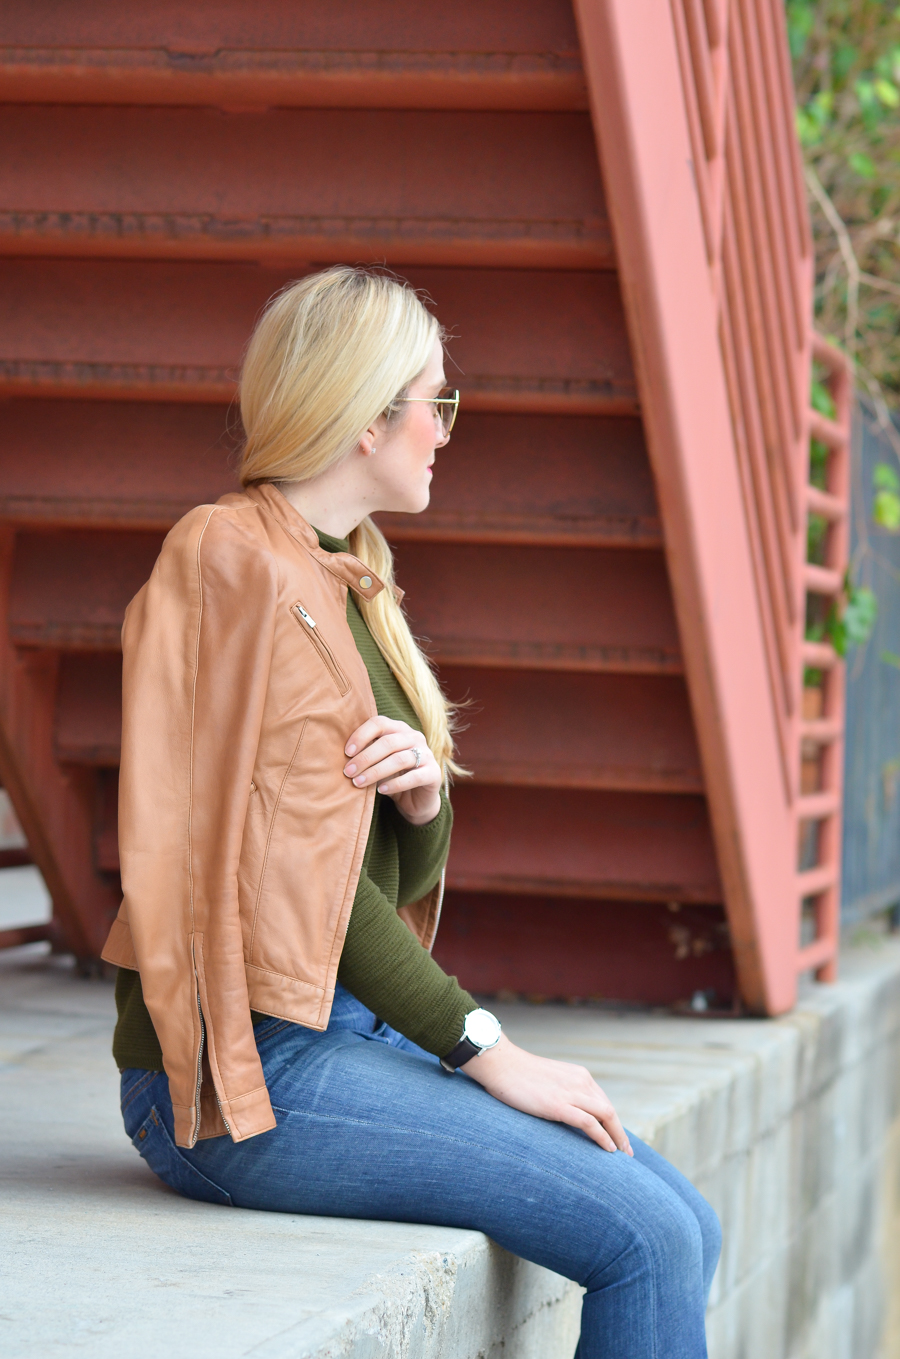 Rewear Wednesday - Tan Leather Jacket Outfits